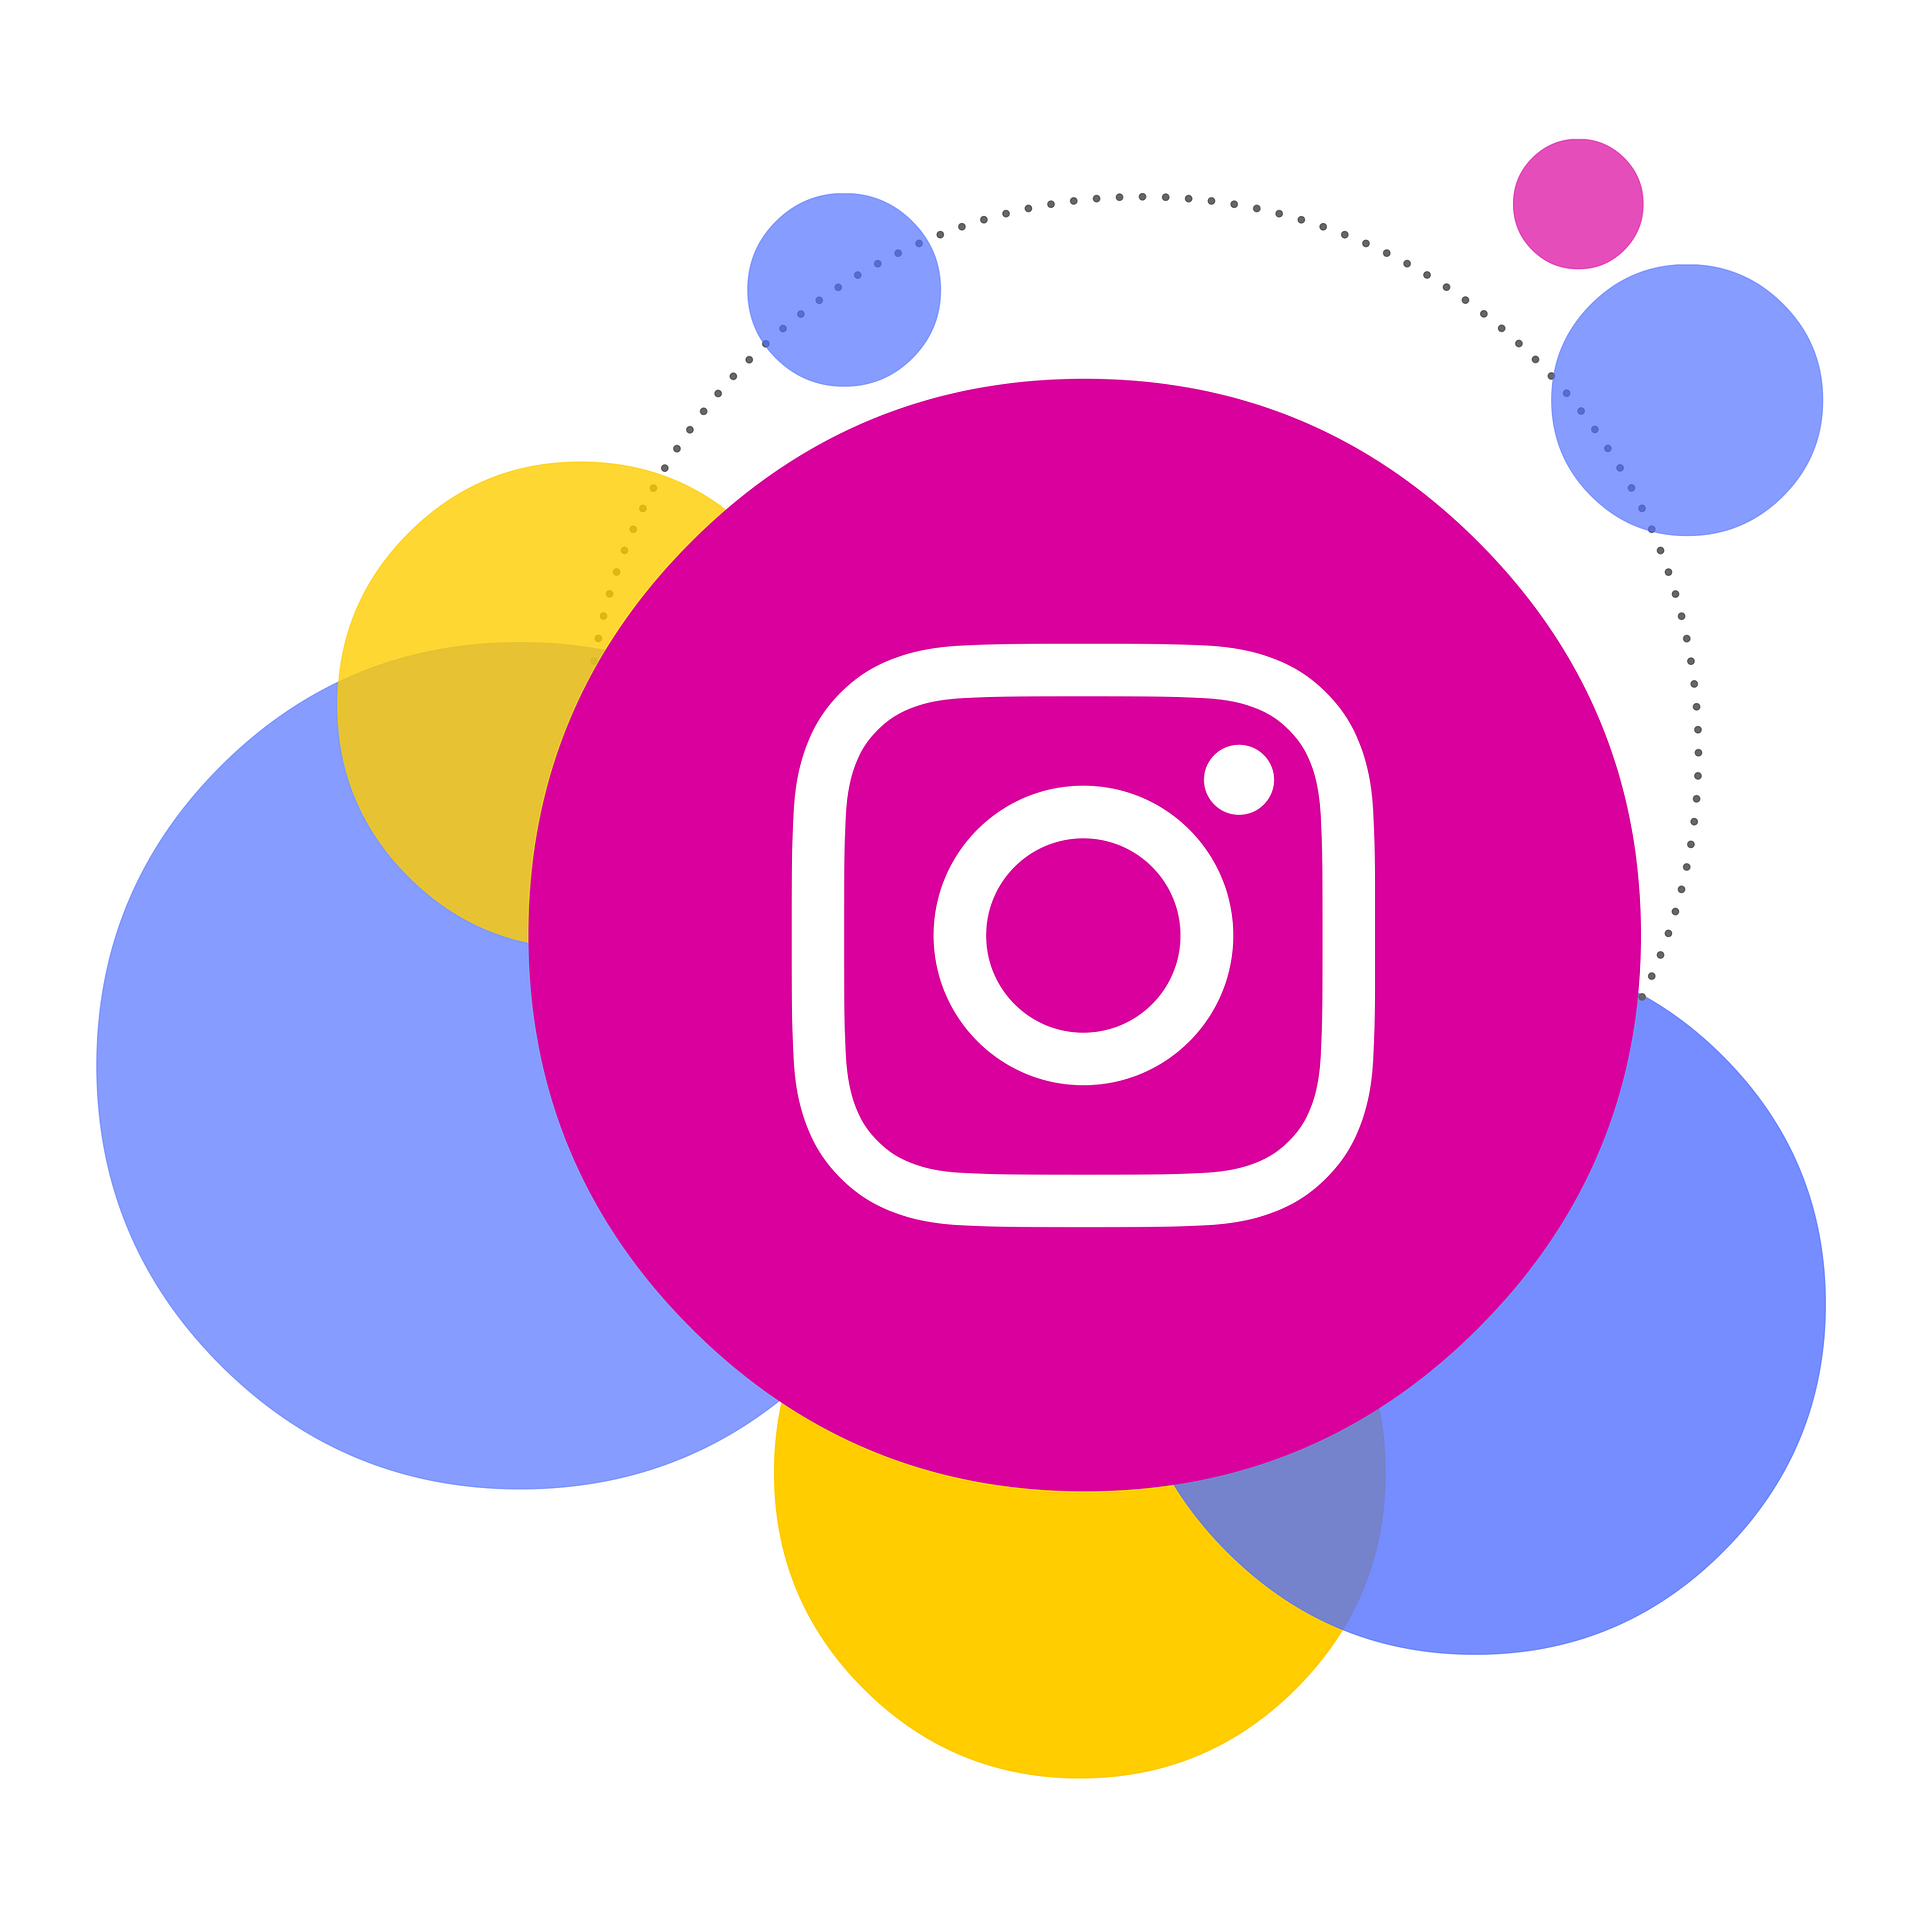 Instagram may be planning to charge a fee to put links in captions, patent suggests